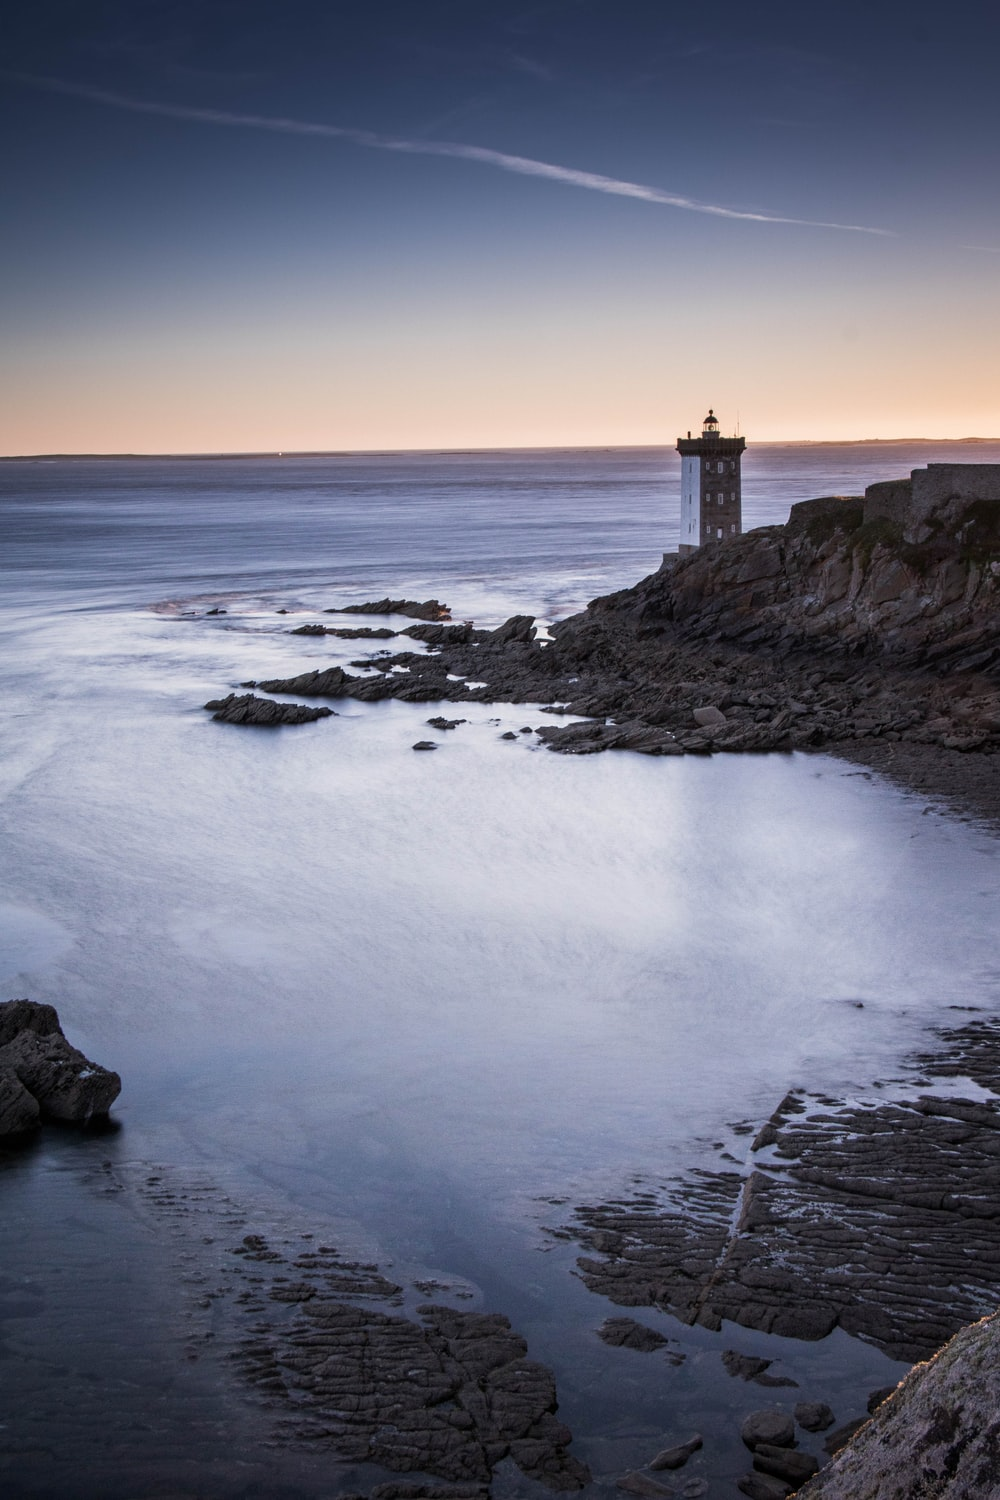 lighthouse near body of water during low tide